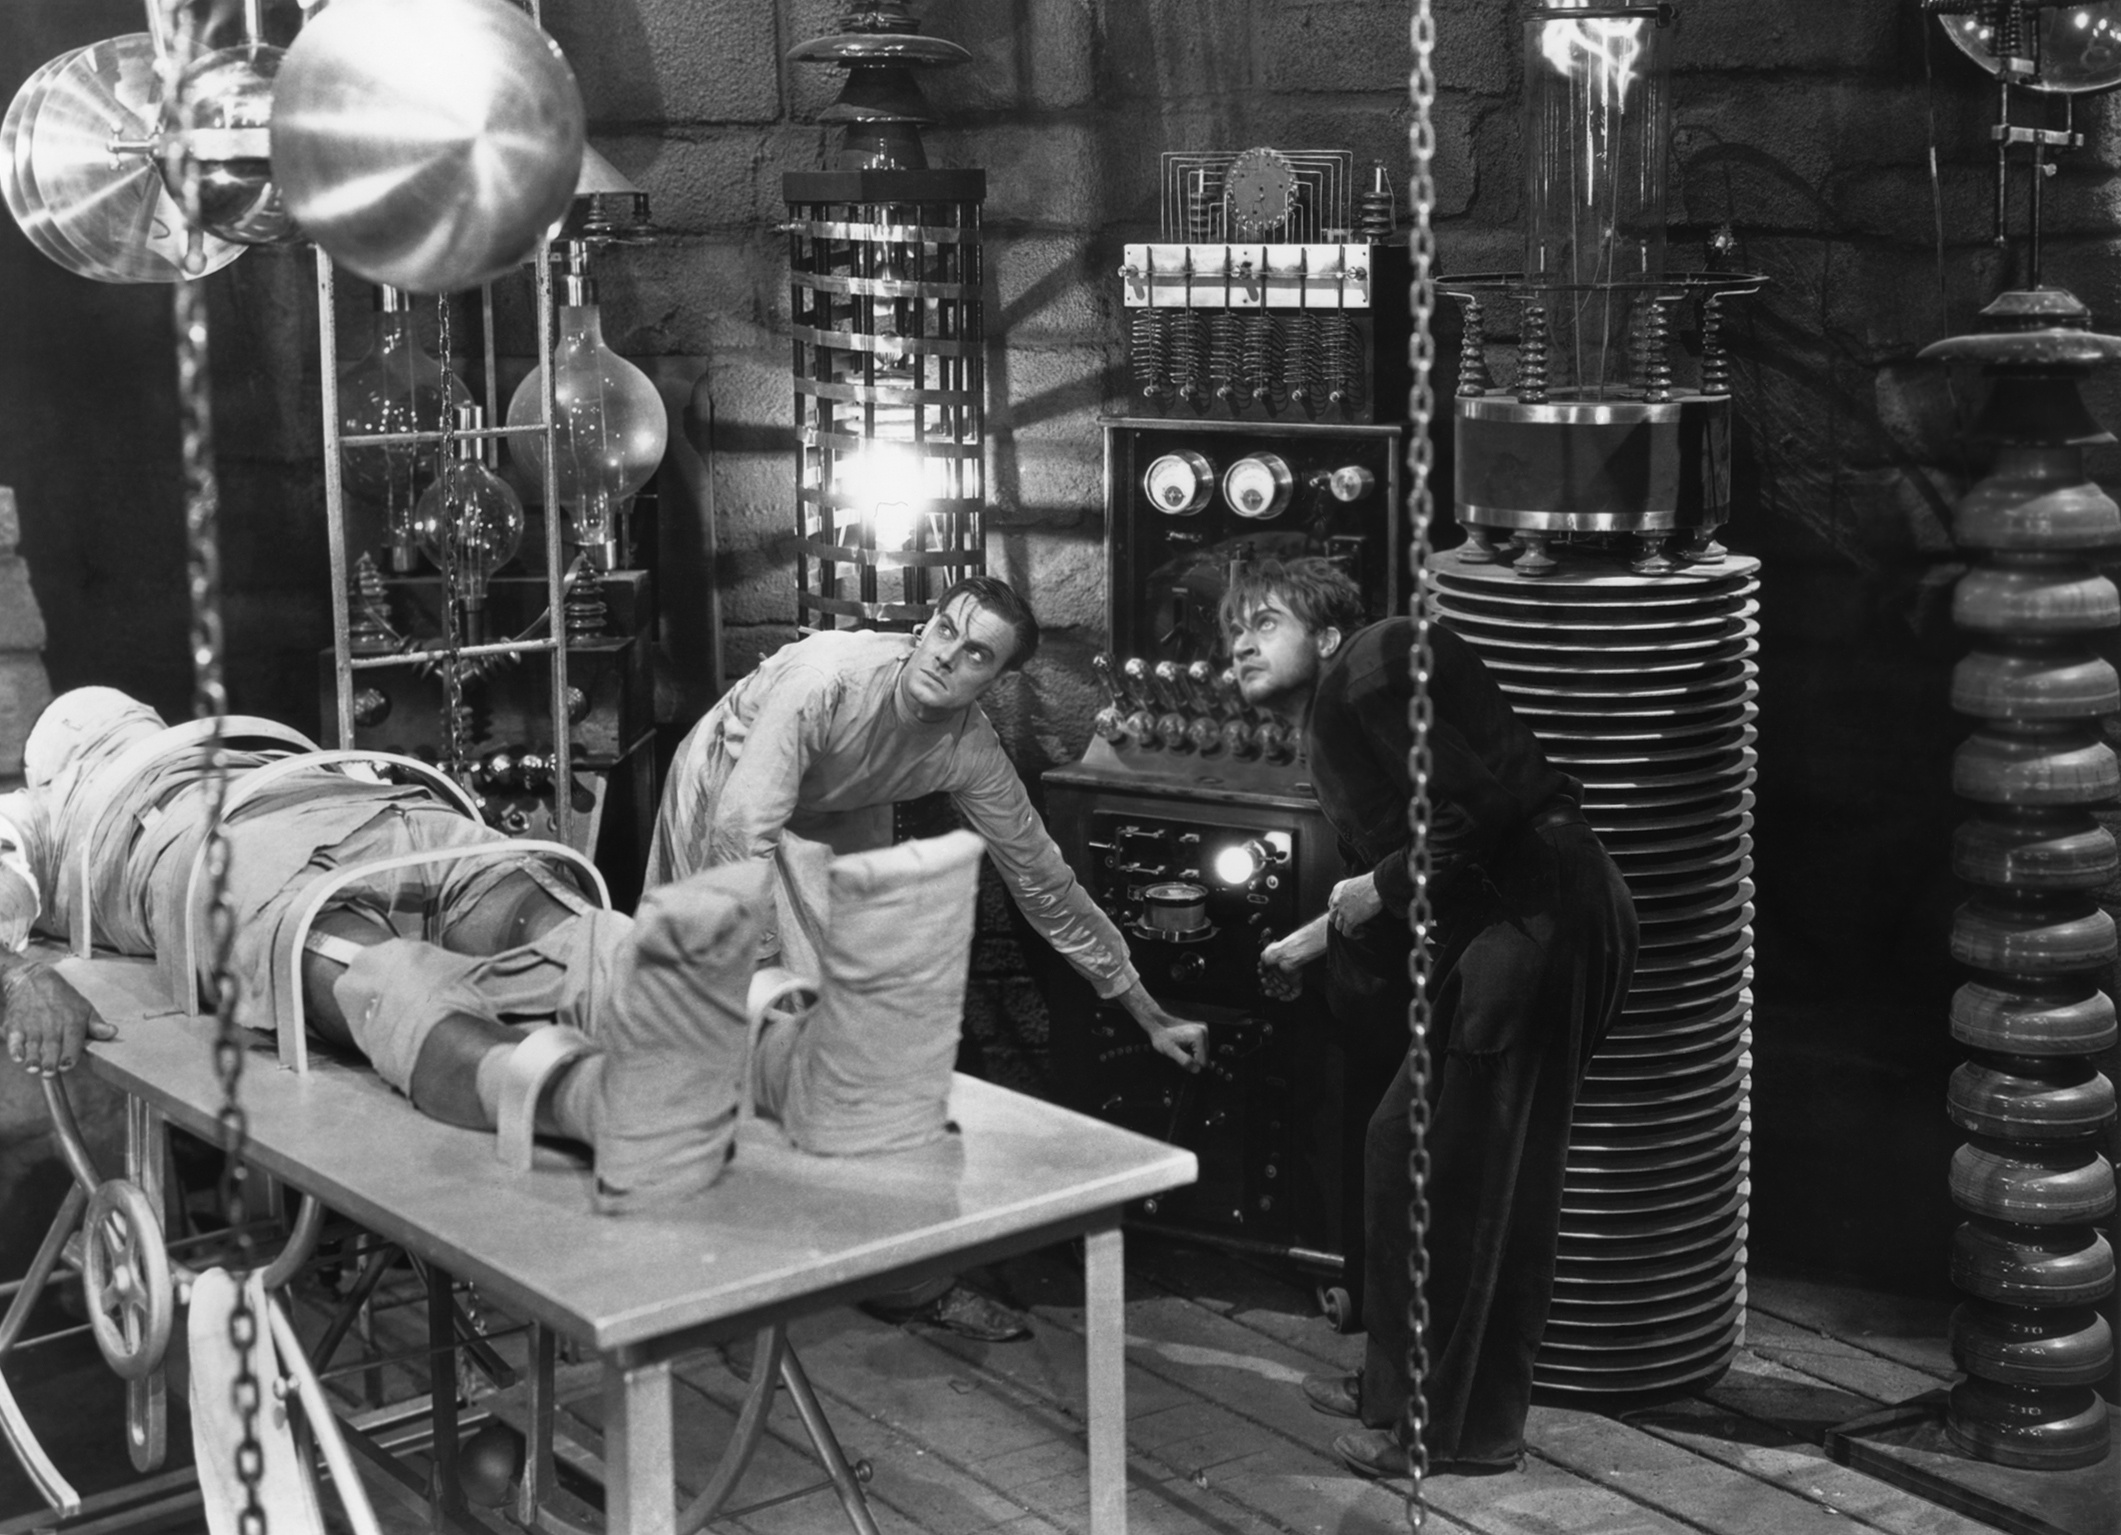 Colin Clive as Frankenstein and Dwight Frye as Friz, the original hunchback lab assistant, in Frankenstein (1931)